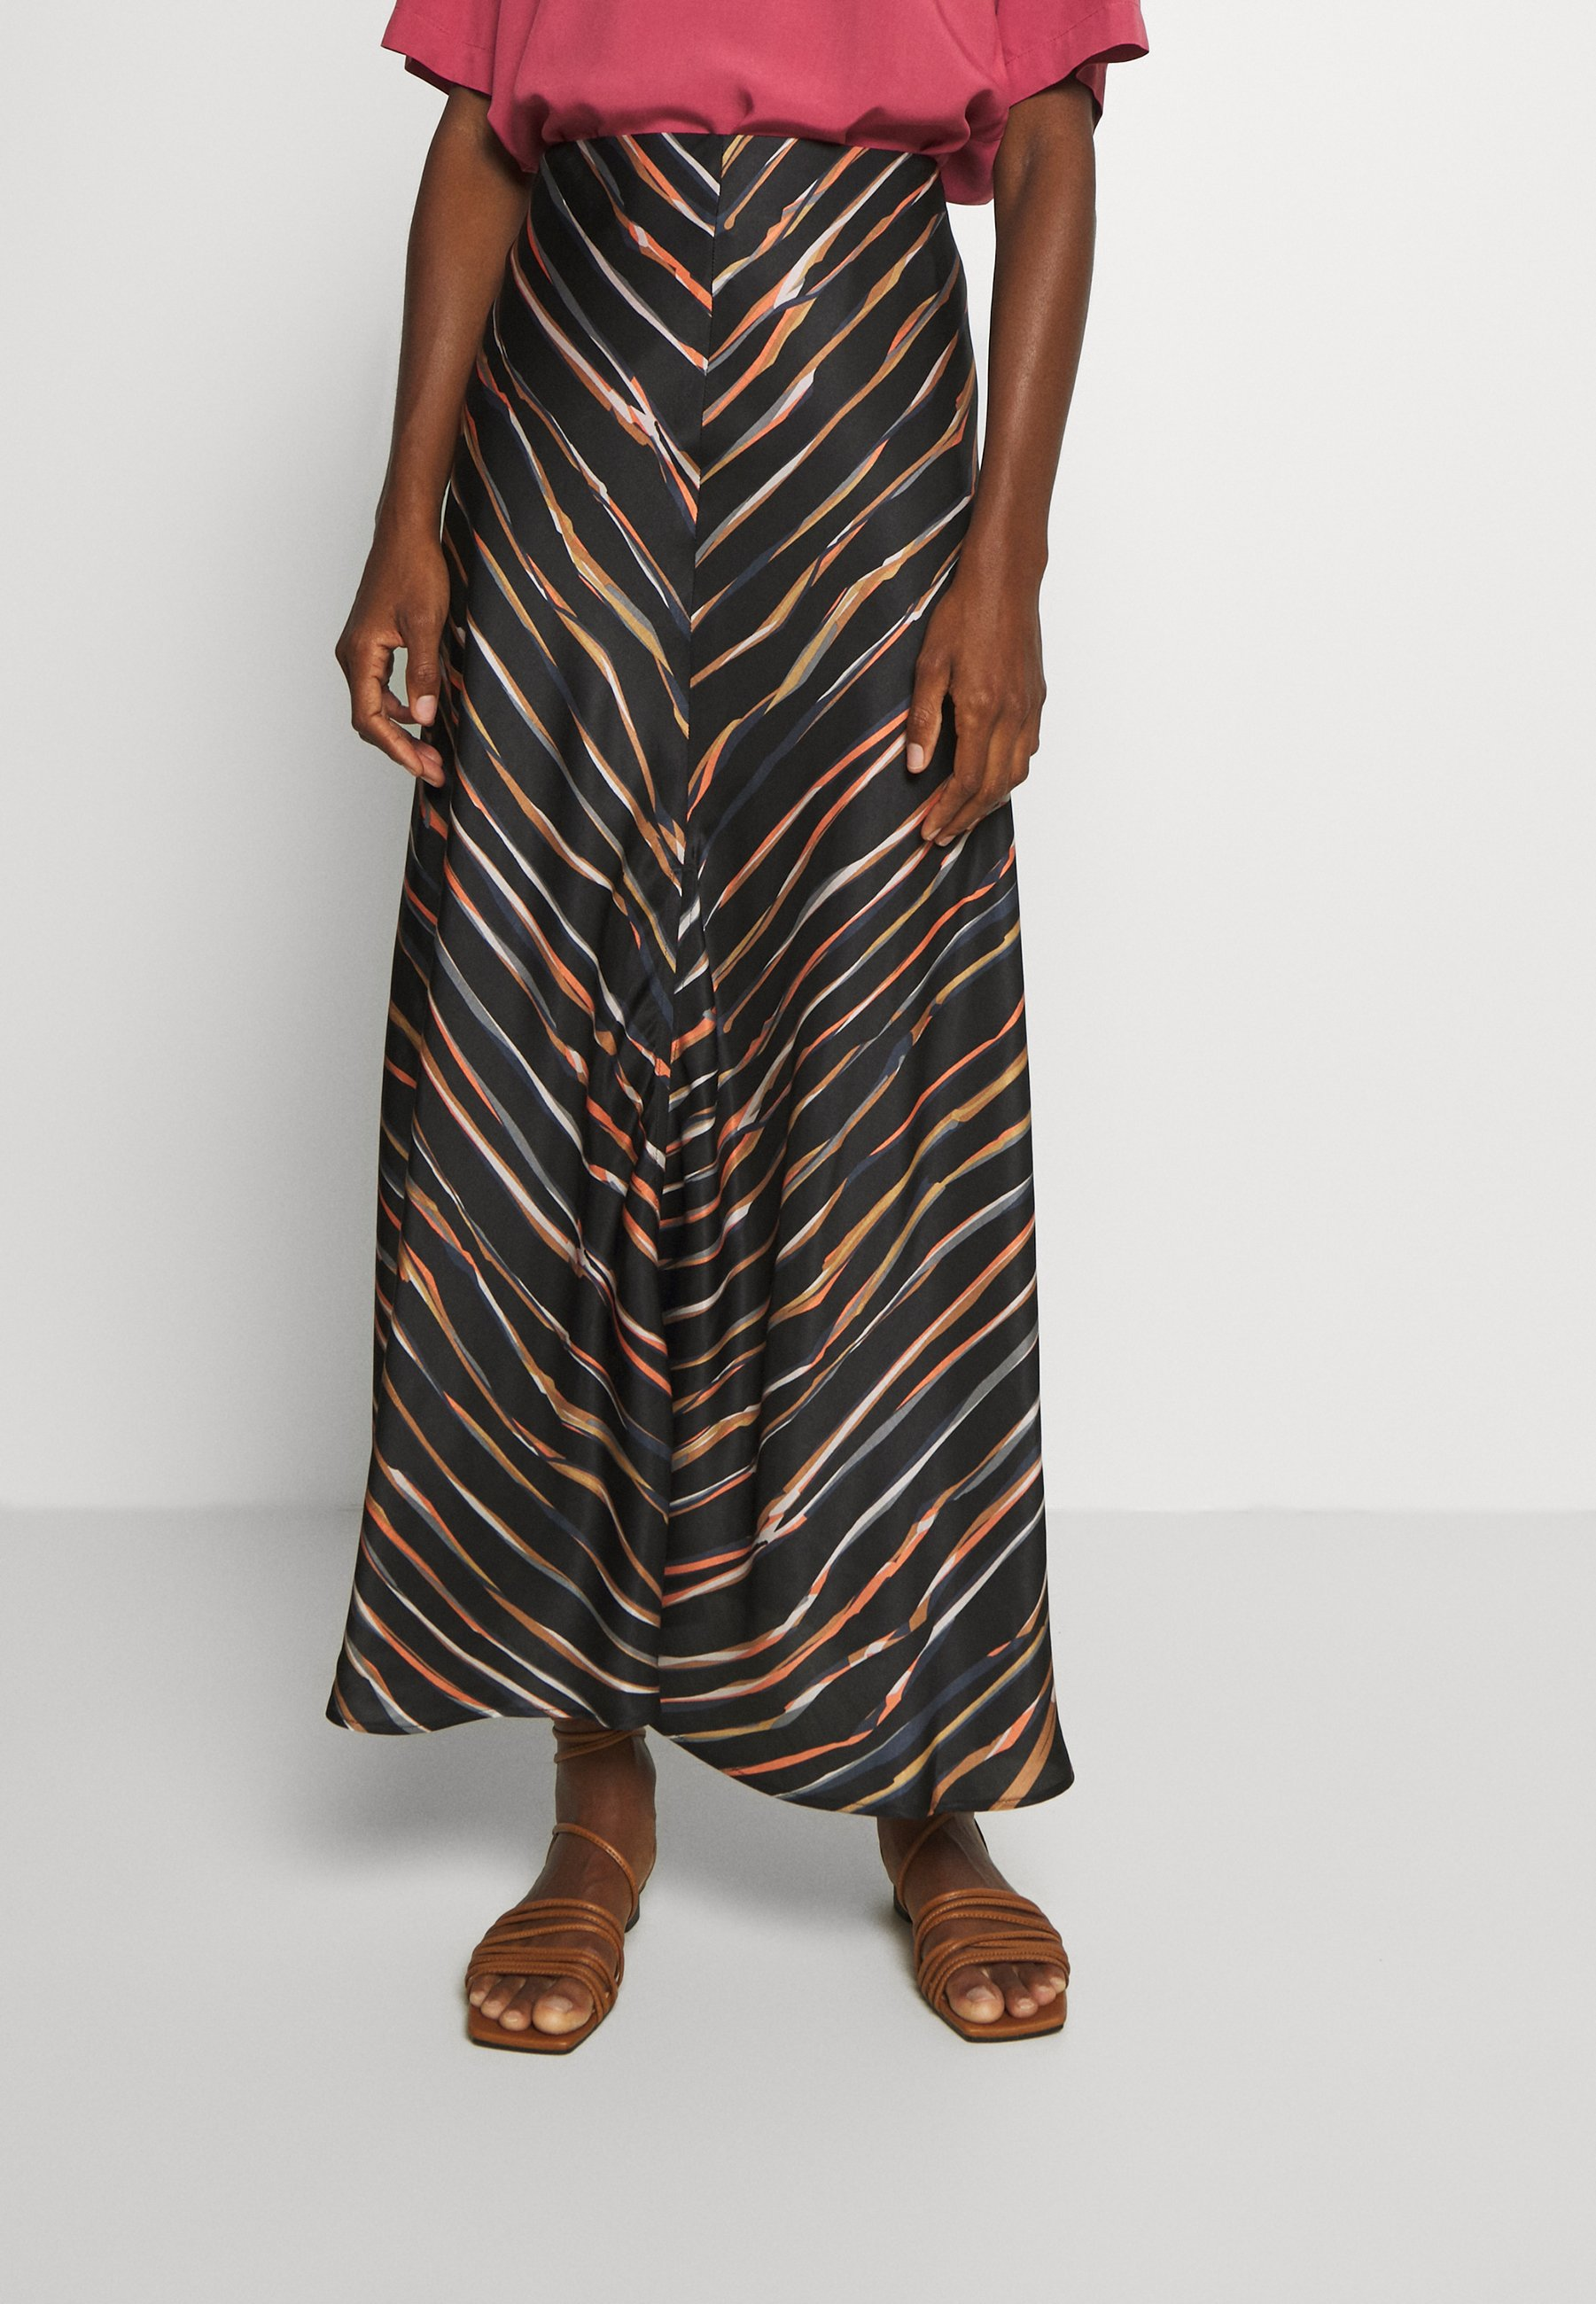 Top-Rated Women's Clothing Marc O'Polo PURE SKIRT LENGHT SLIT Maxi skirt multi/black 9B2HAl02E